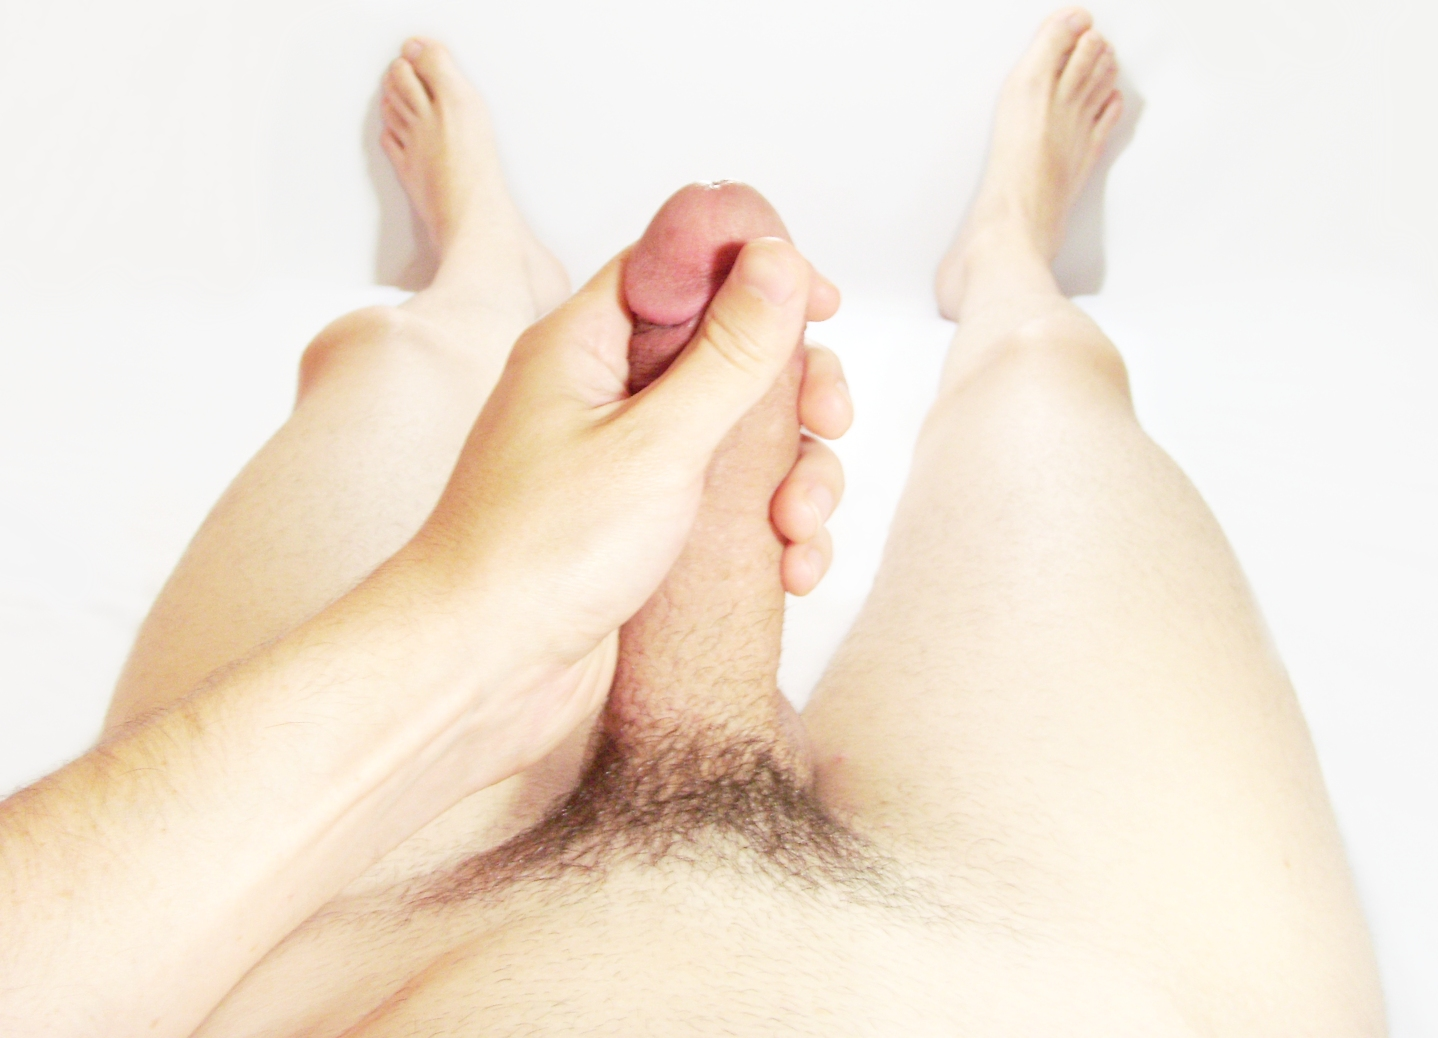 Solo Male Masturbation Shower